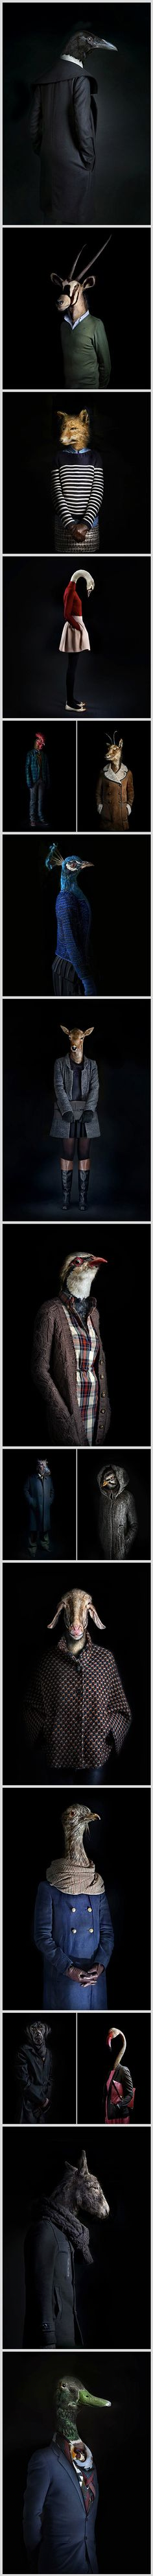 "Madrid-based advertising and industrial photographer Miguel Vallinas presents his whimsical photo series, titled ""Second Skins"", where various animals take up a role that's completely new to them. Dressed in fashionable clothes, each of them poses as a typical human model would, and it appears the their outfits match their personalities as a true second skin."